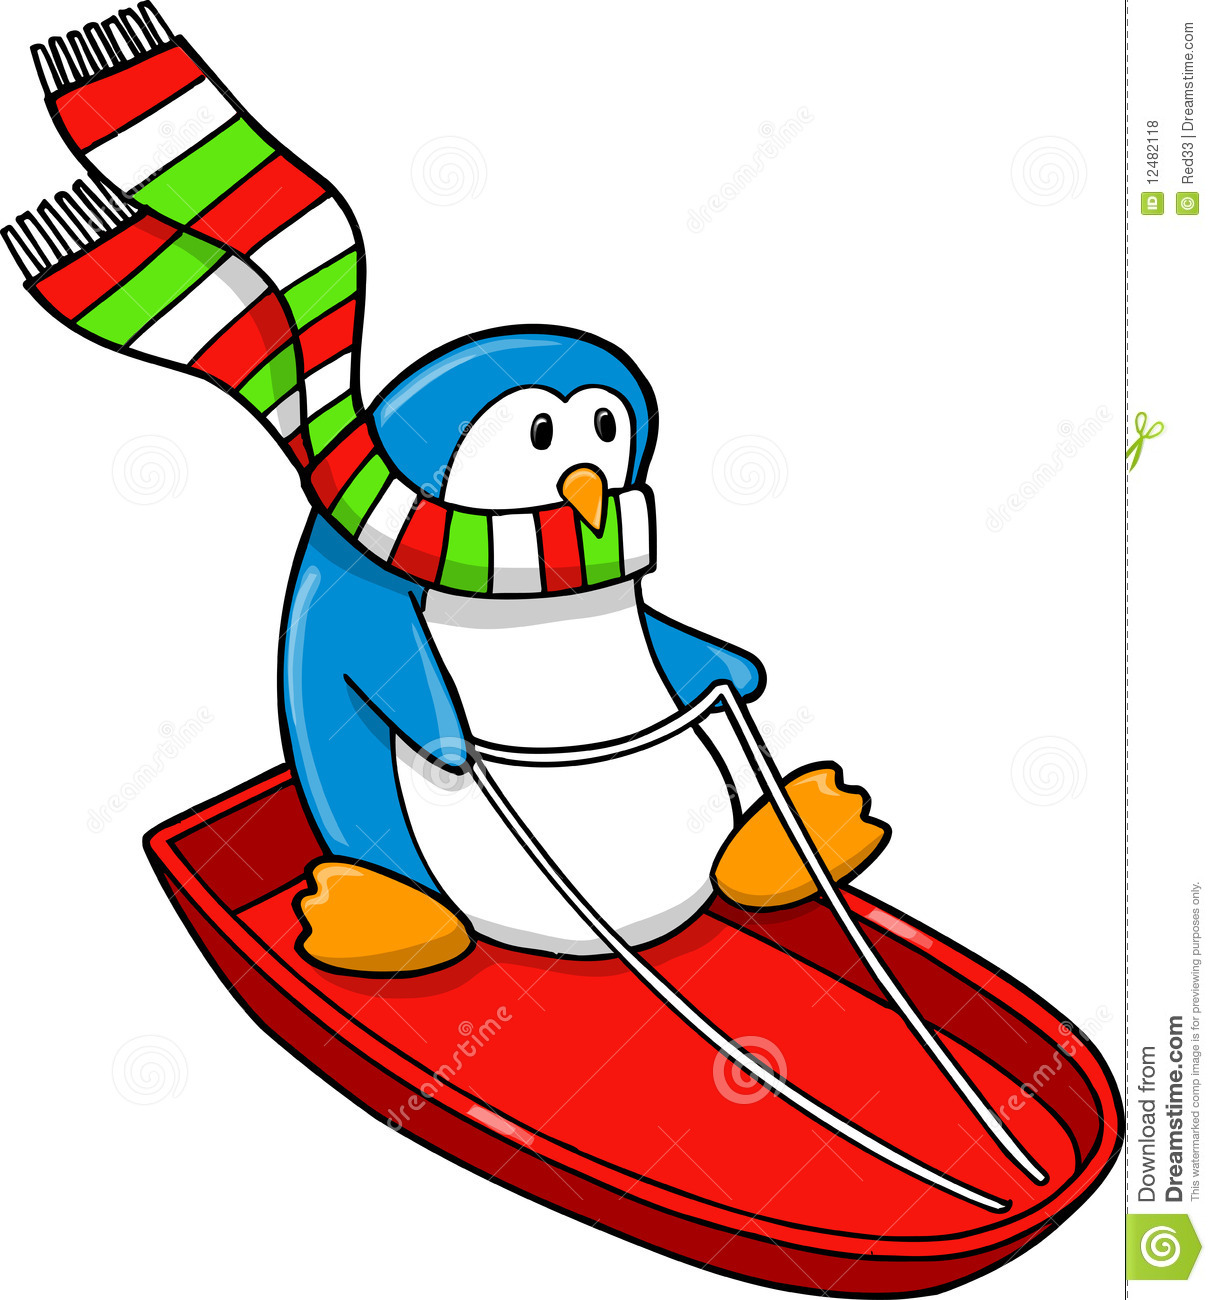 Sledding Holiday Penguin Royalty Free Stock Photos - Image: 12482118